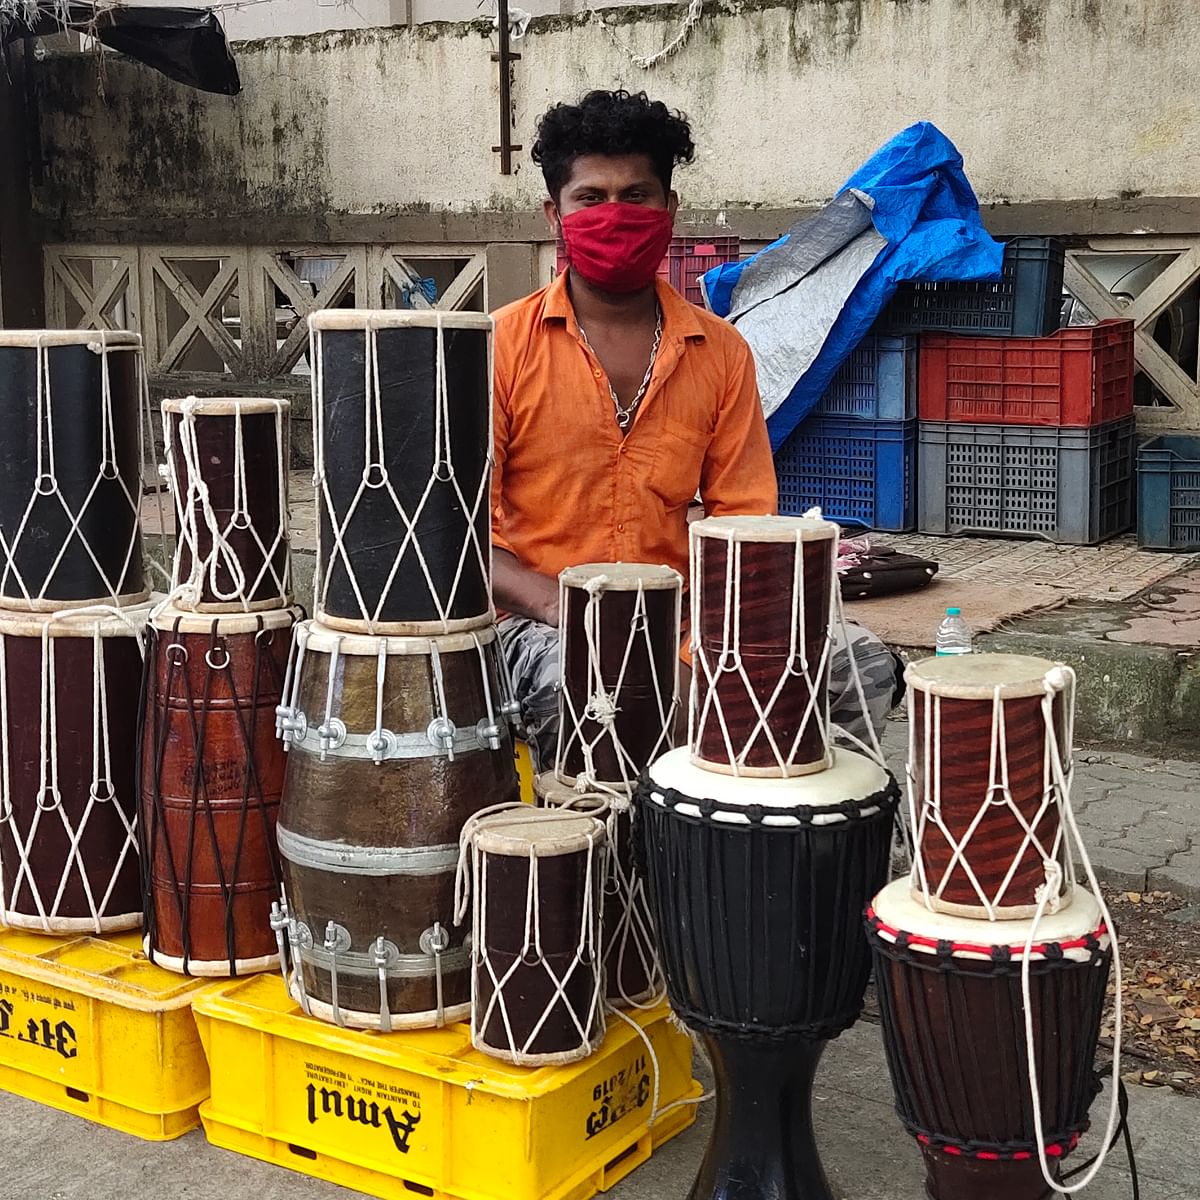 FPJ Exclusive: Dhol makers lose the rhythm of life due to COVID-19